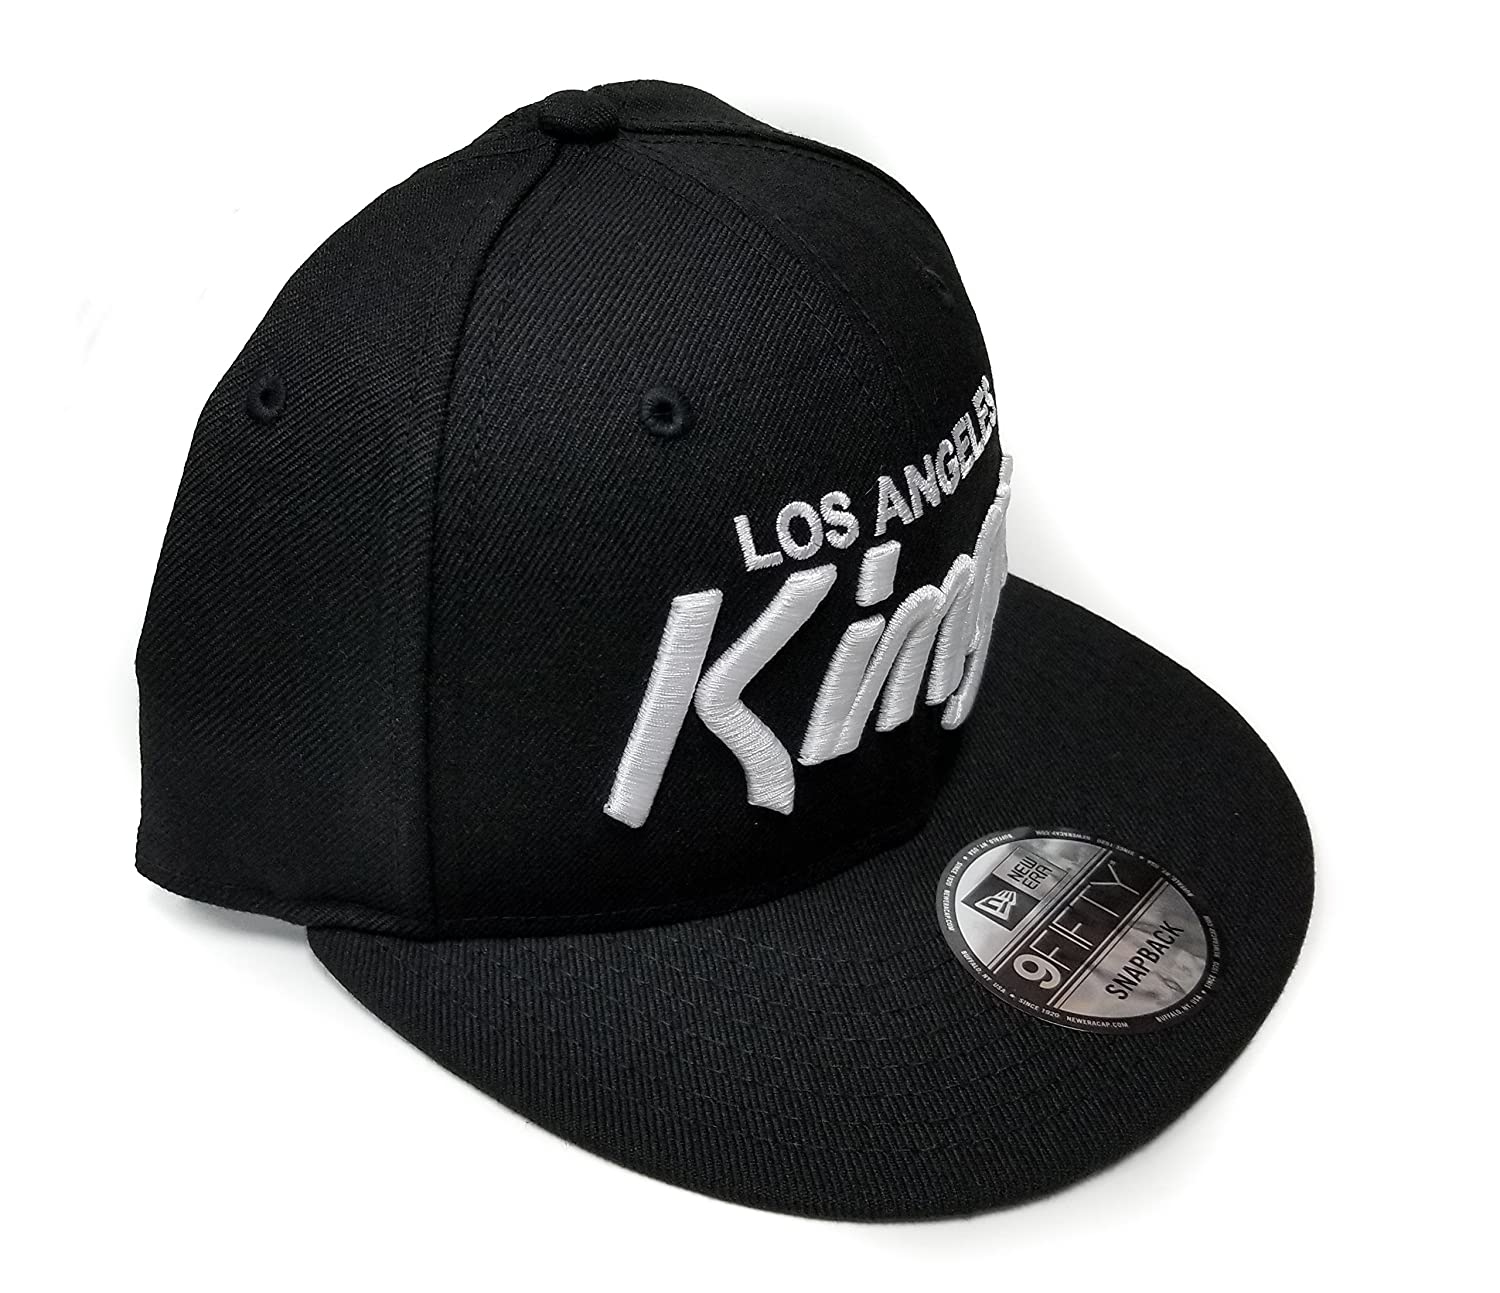 size 40 678d3 e3c00 Amazon.com   New Era Los Angeles Kings 9Fifty Basic Black and White Vintage  Script N.W.A Adjustable Snapback Hat NHL   Clothing